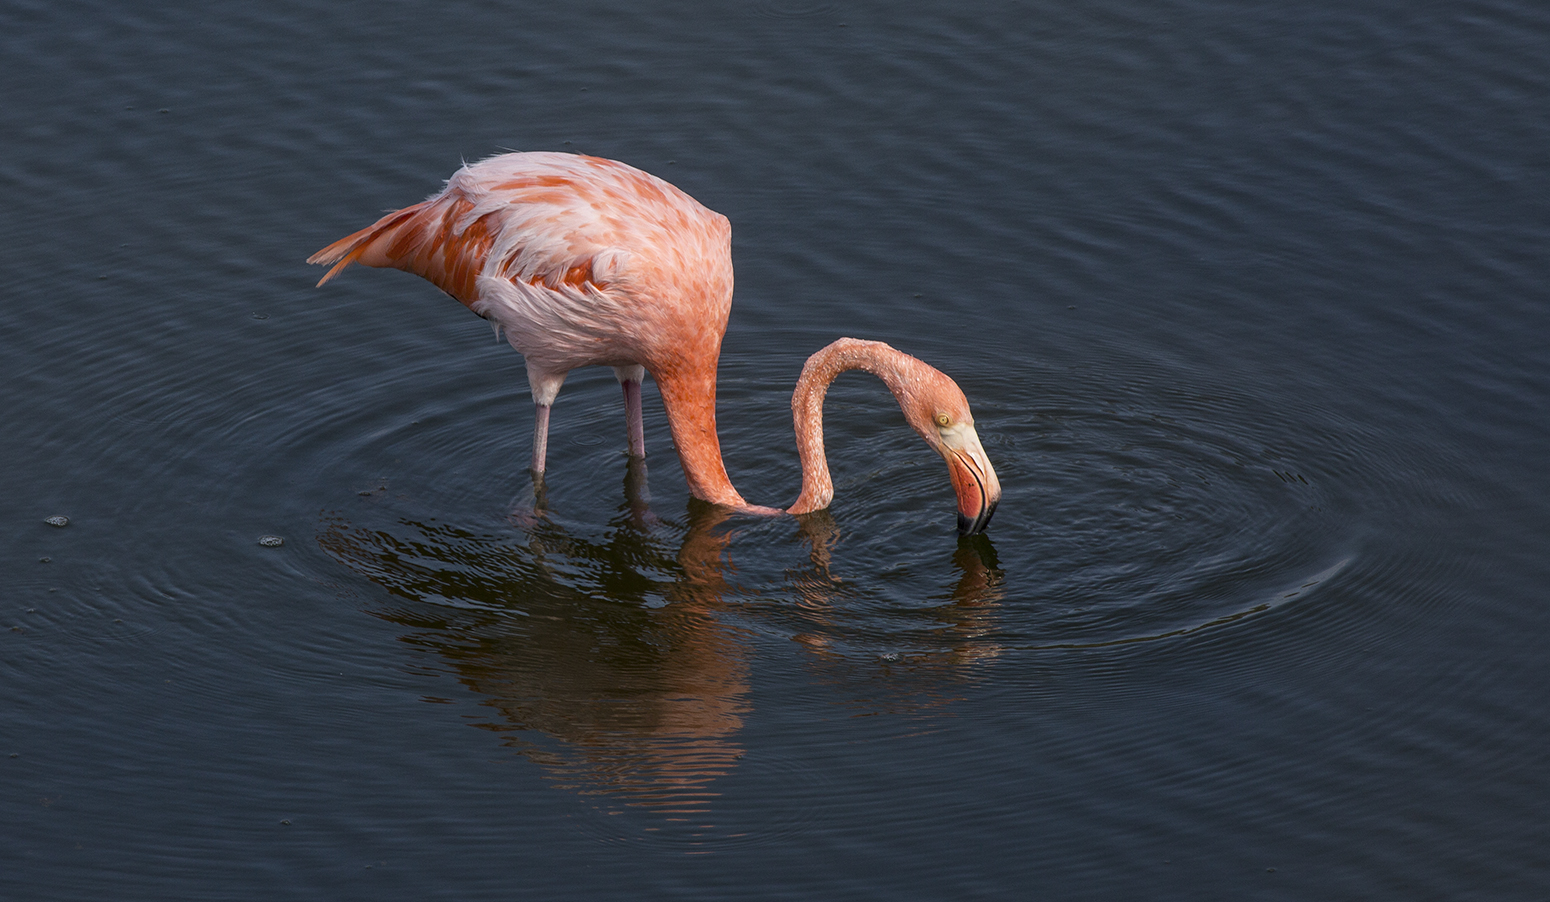 Flamingo comiendo web